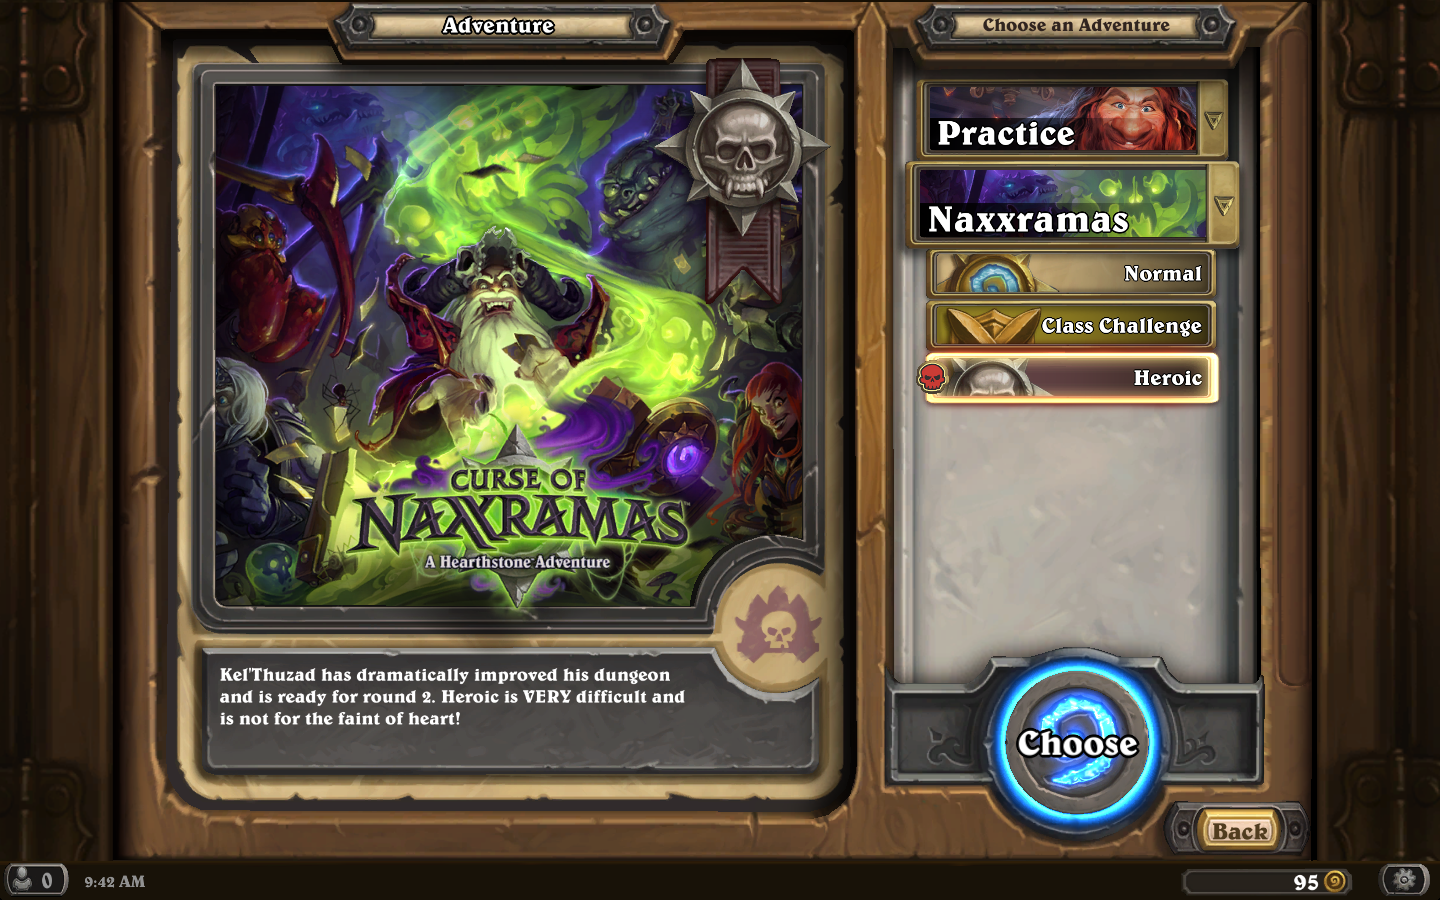 Blizzard Hearthstone Curse of Naxxramas card game expansion